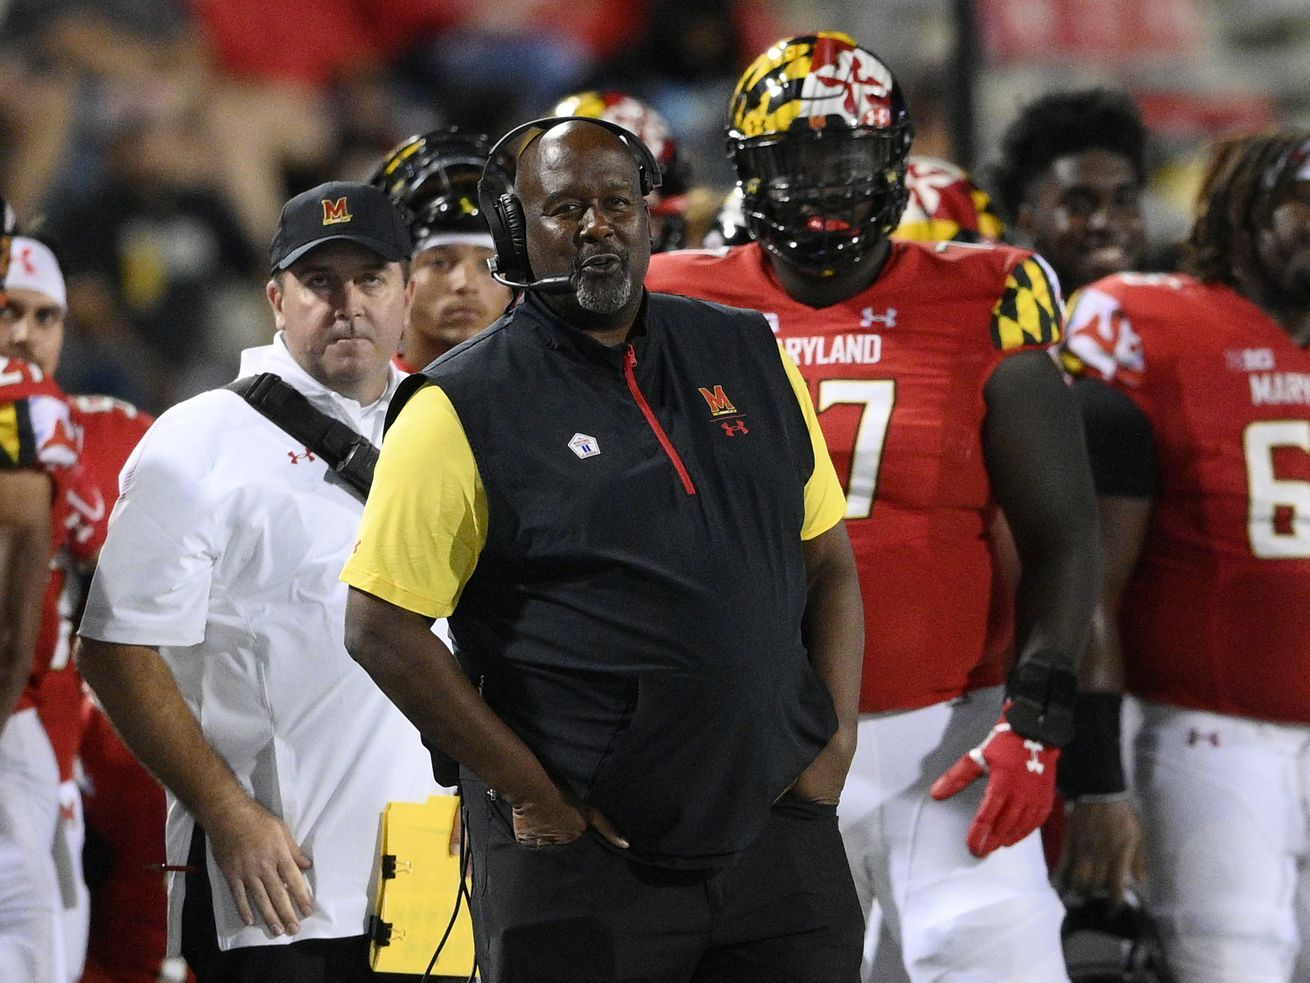 Maryland head coach Michael Locksley, a former offensive coordinator at Illinois, will lead the Terapins to their first road game against the Illini.